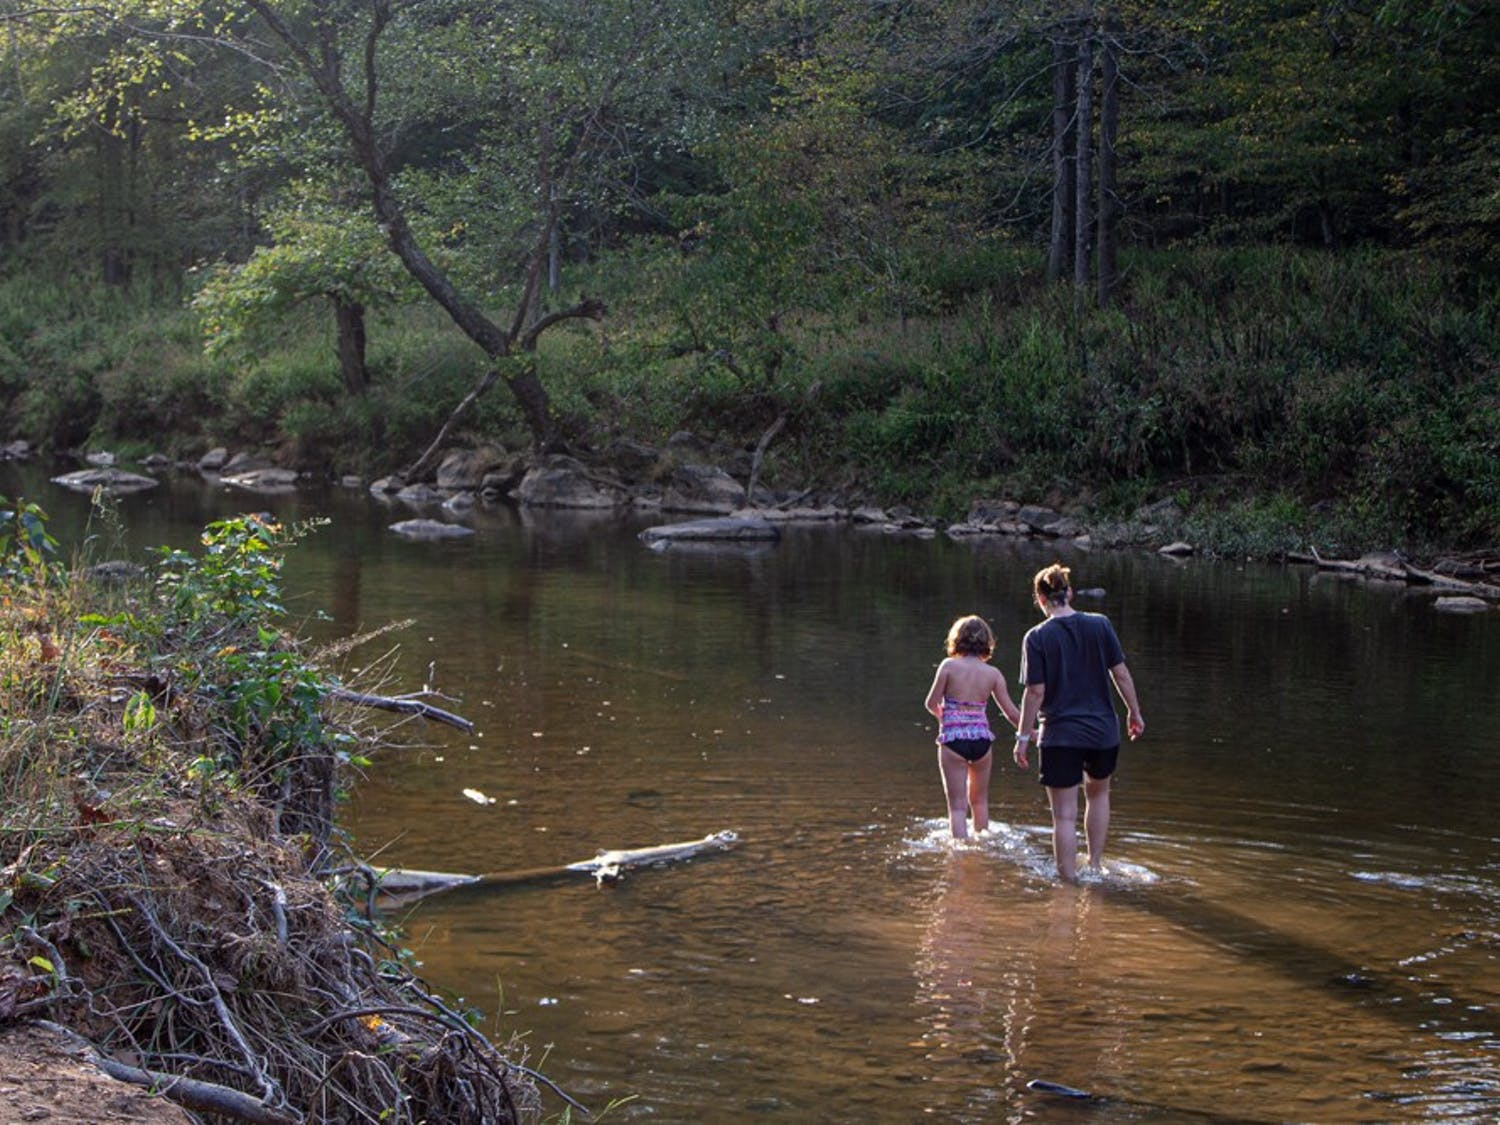 Durham residents Makayla Perry (8) and Beth Revueltas (36) wade in Eno River along Fanny's Ford Trails in Hillsborough on Monday, Sept. 30, 2019.